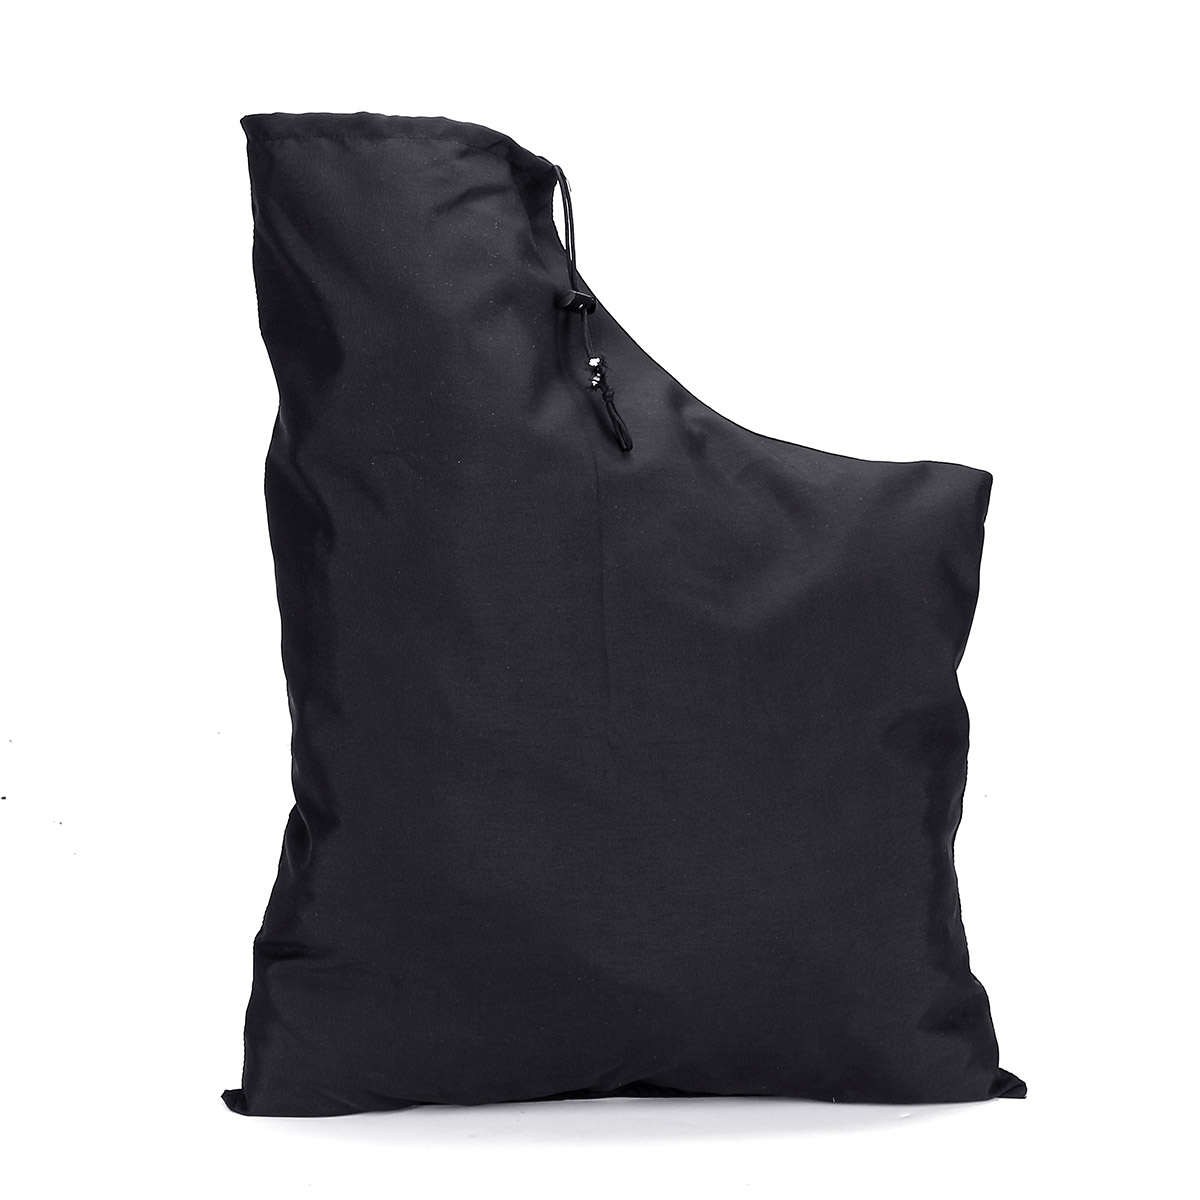 Black Leaf Blower Vacuum Bag Fit For Eater Barracuda 2595 Mulcher Lawn Yard Shredder Garden Tool Storage Bag Accessories